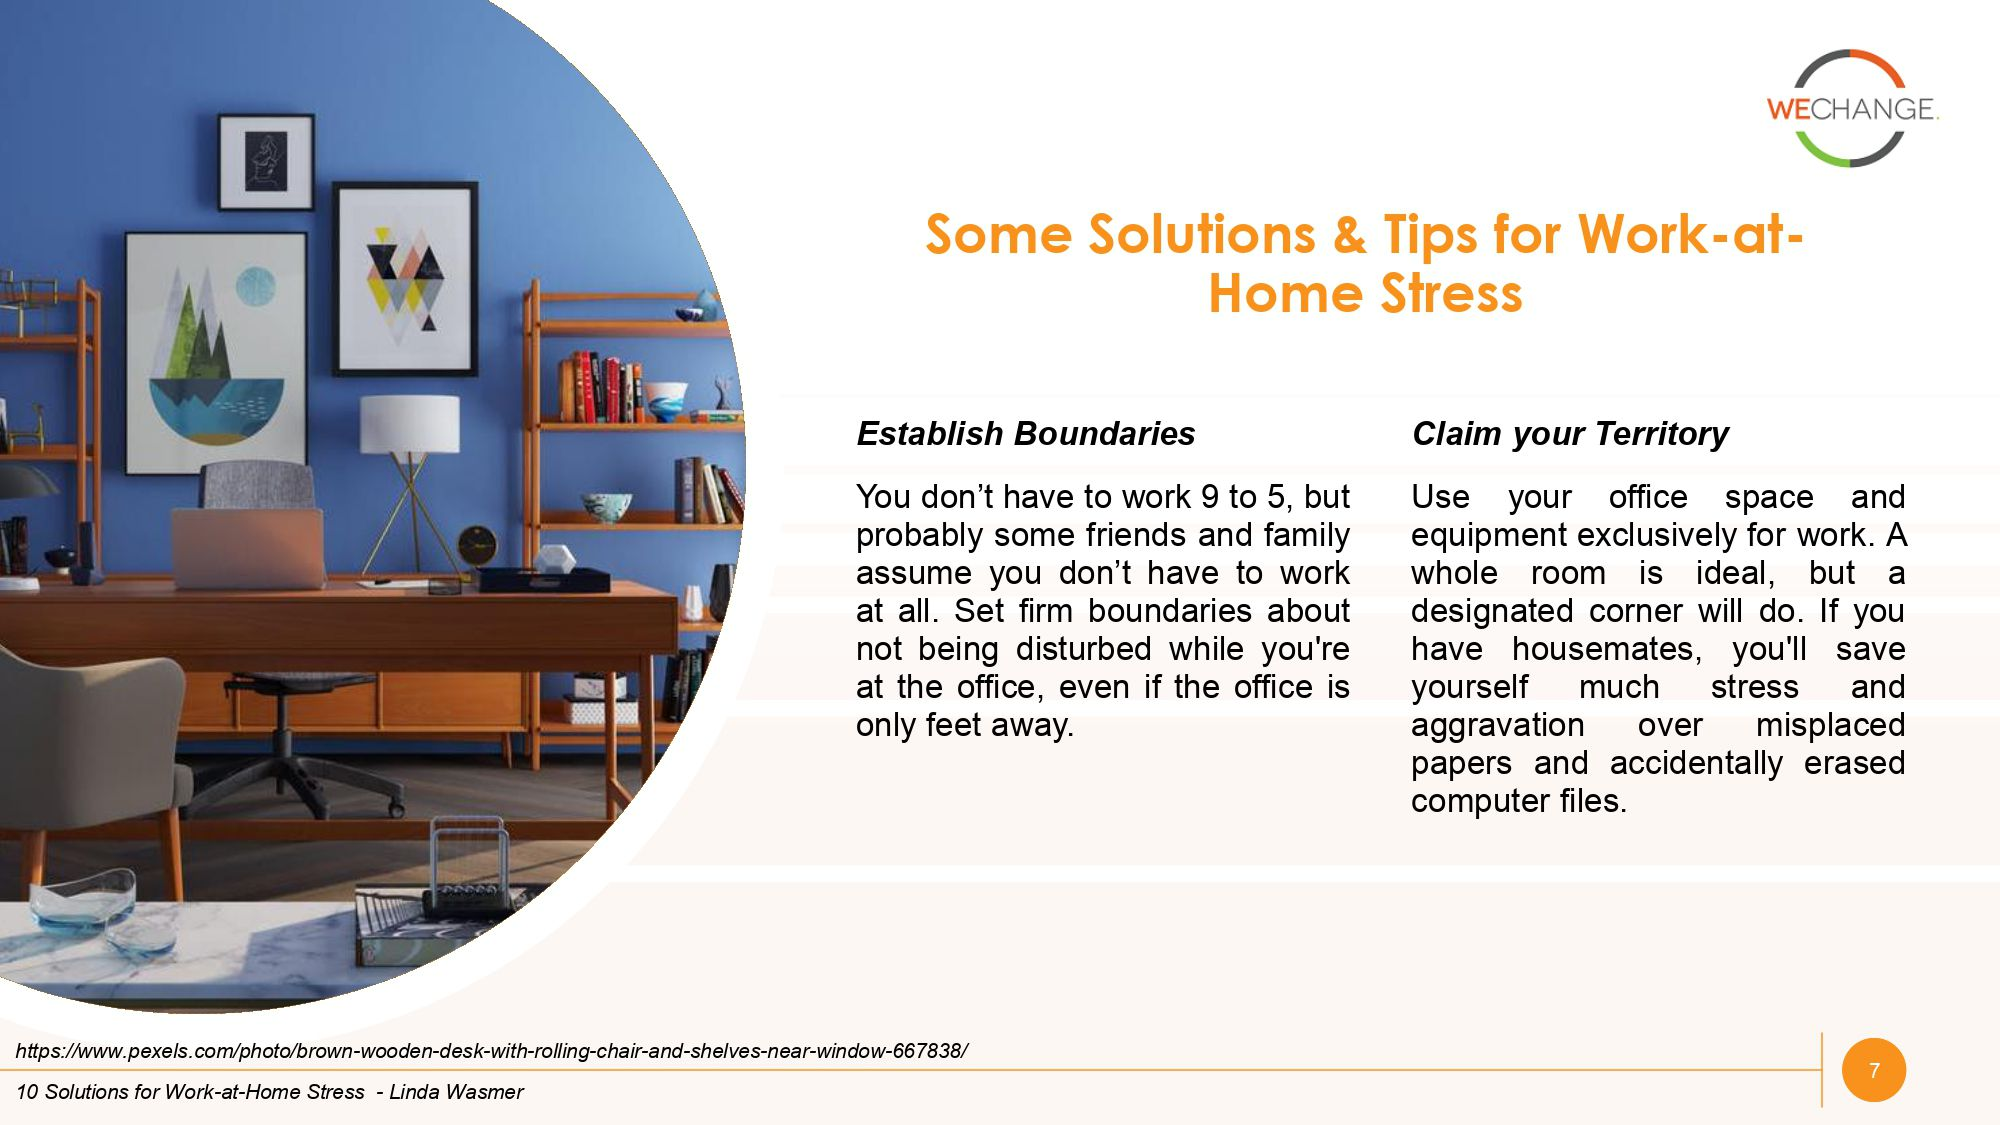 How to deal with employees stress of working from home in corona virus days page 0007 compressed How to deal with employees stress of working from home in corona virus days?